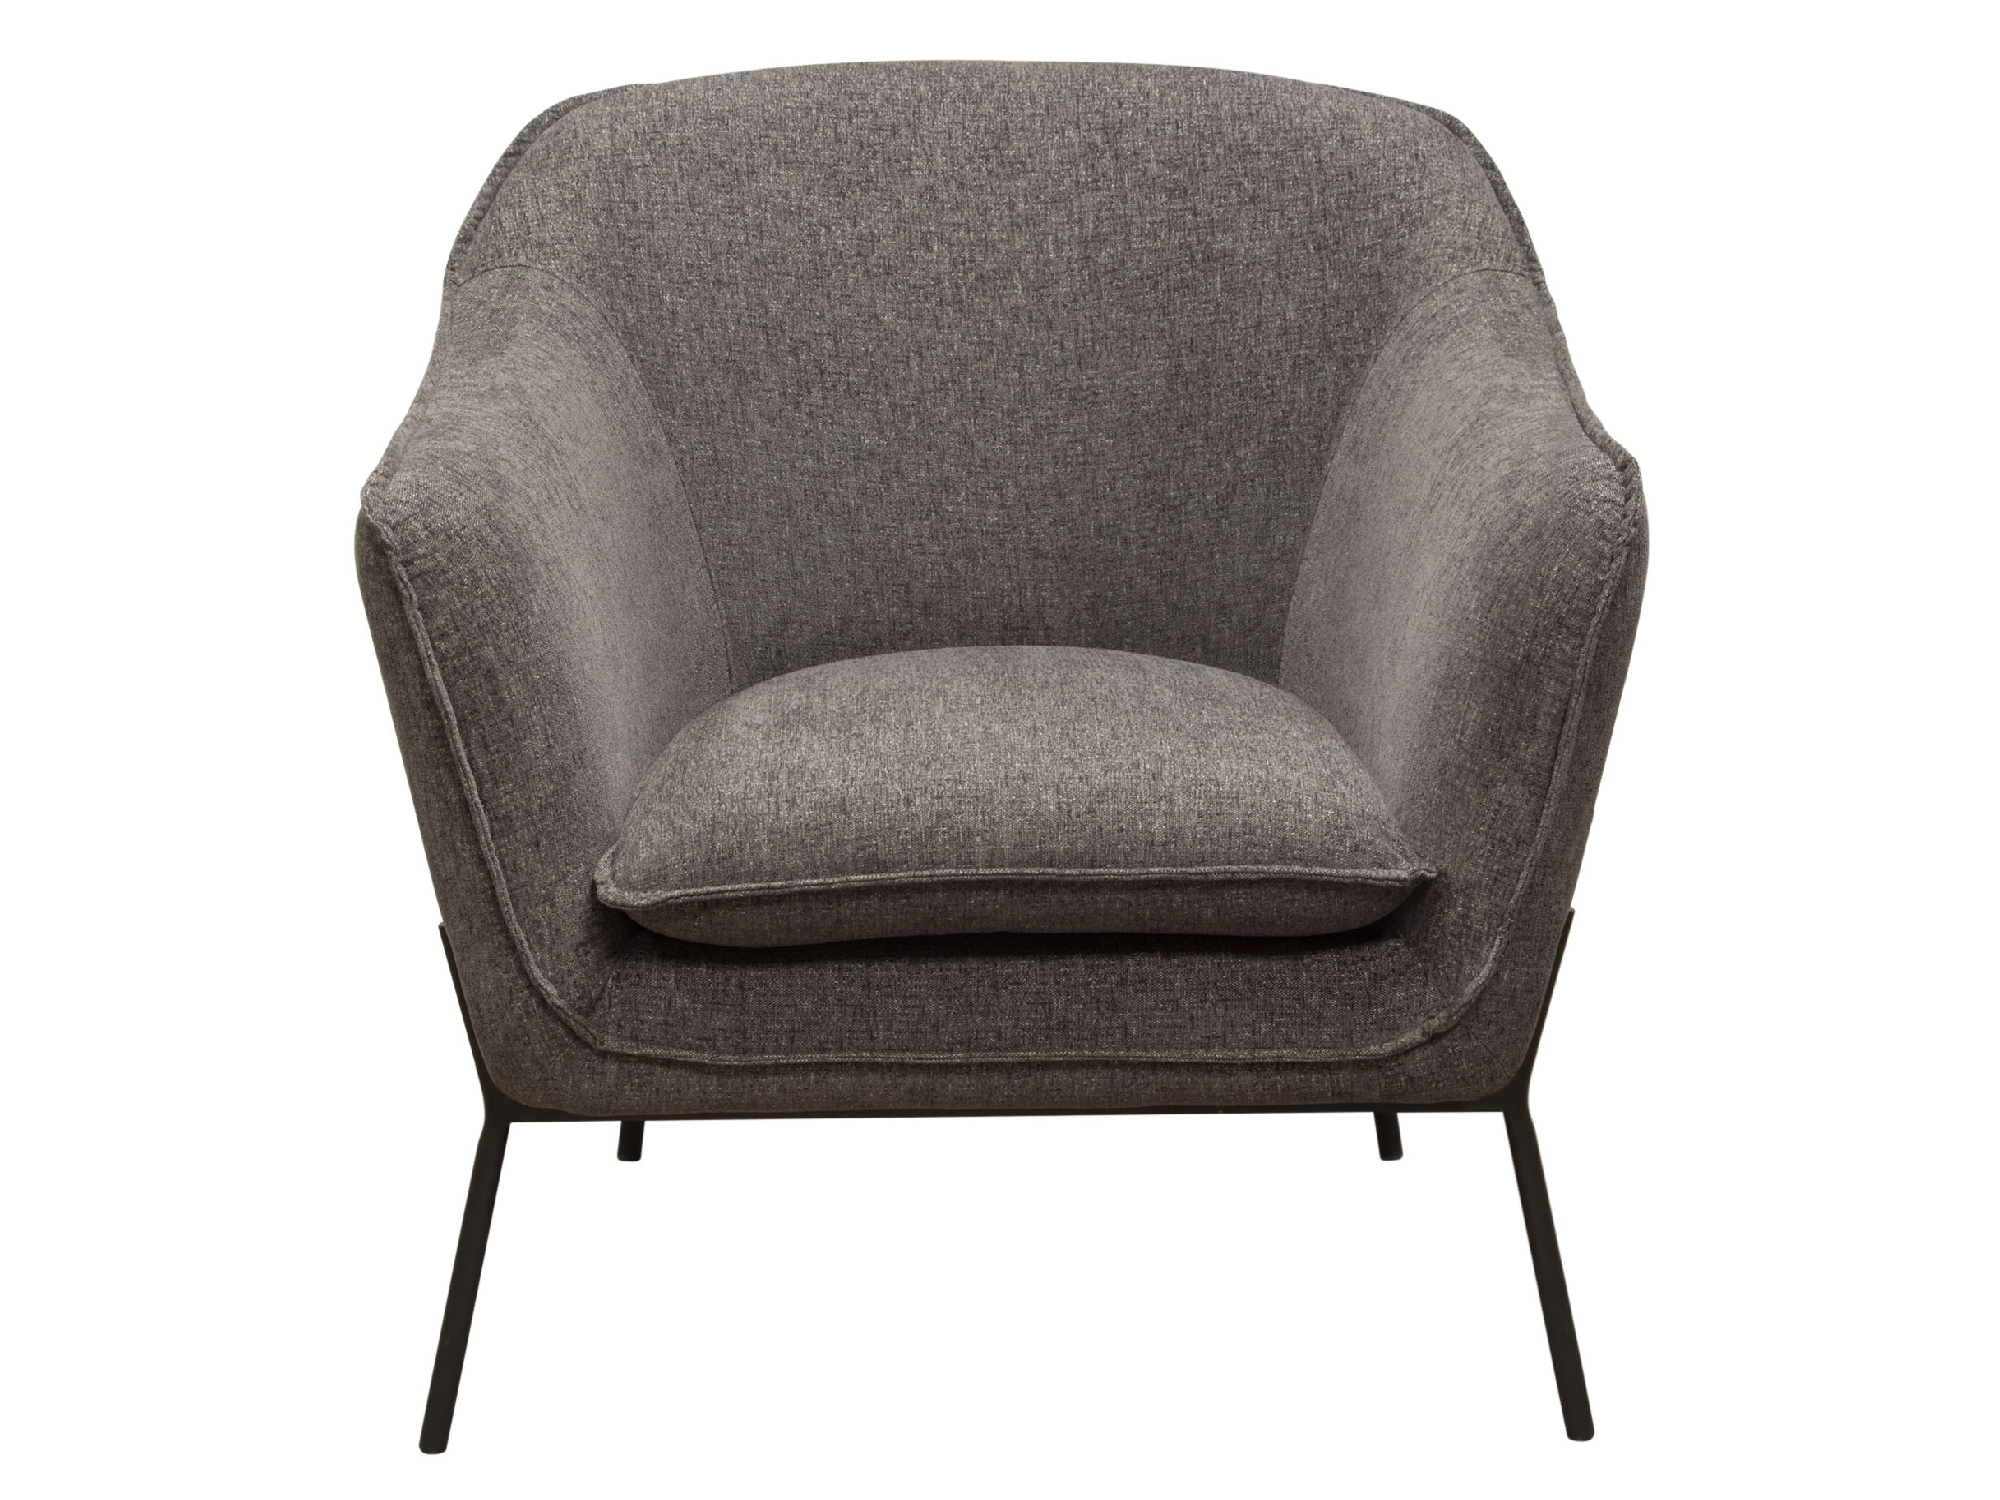 SOHO ARMCHAIR - DUSK GREY